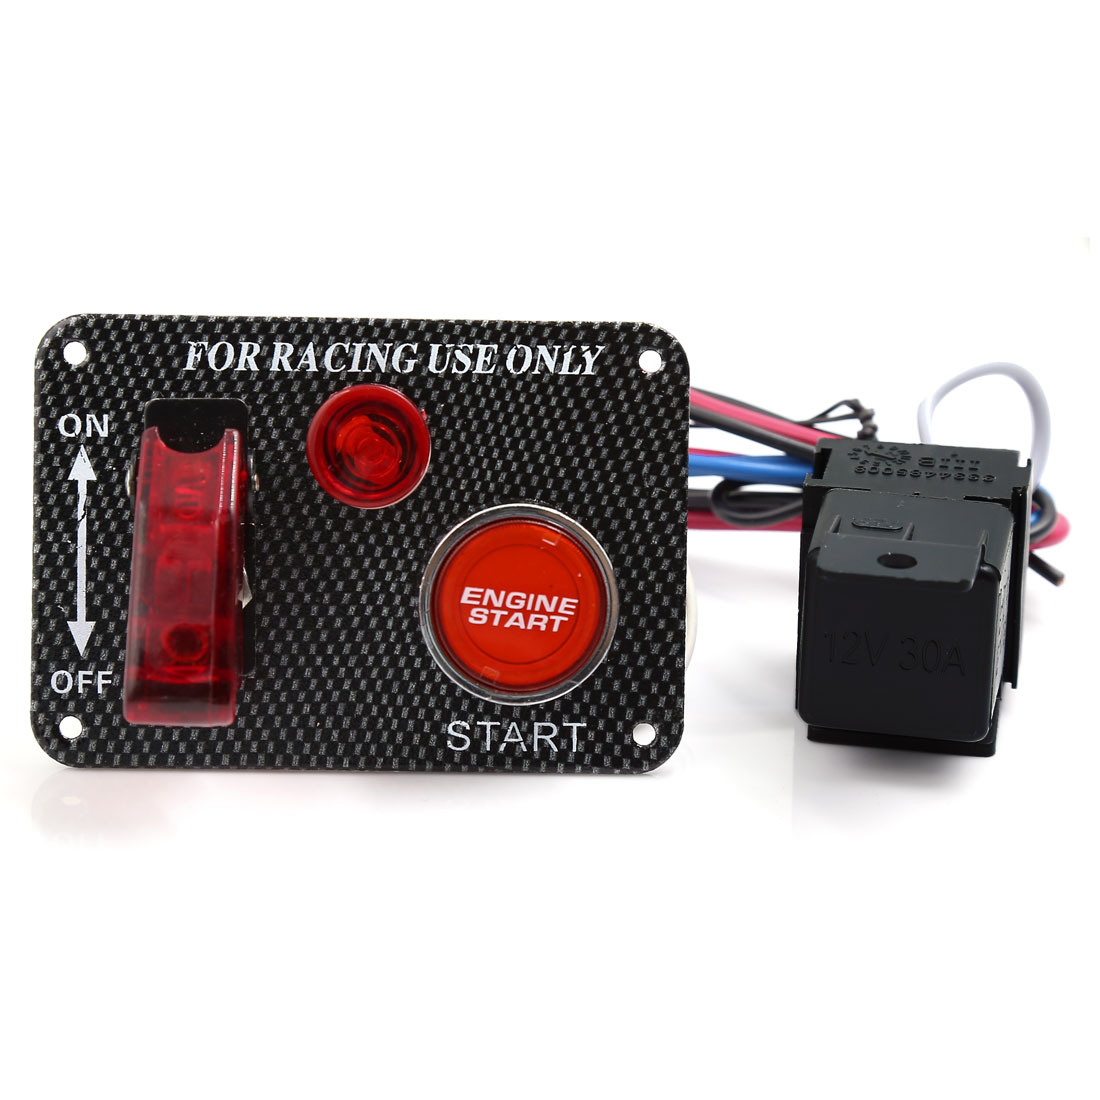 Universal DC 12V Racing Car Ignition Switch Panel Engine Start Push Button Red LED Toggle